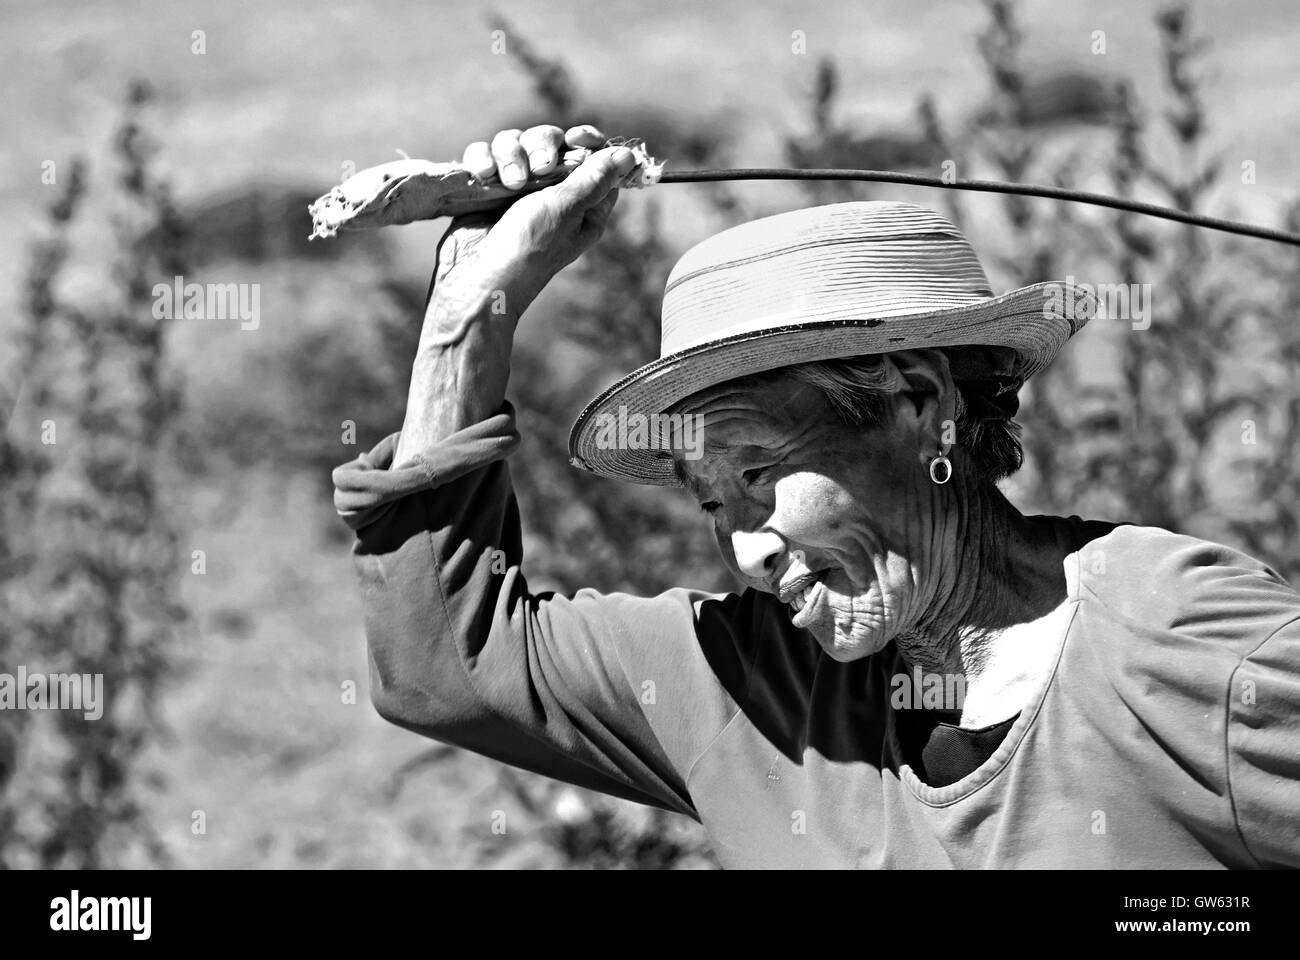 Old woman with a whip stick to beat the wool in the Gobi Desert, Mongolia - Stock Image